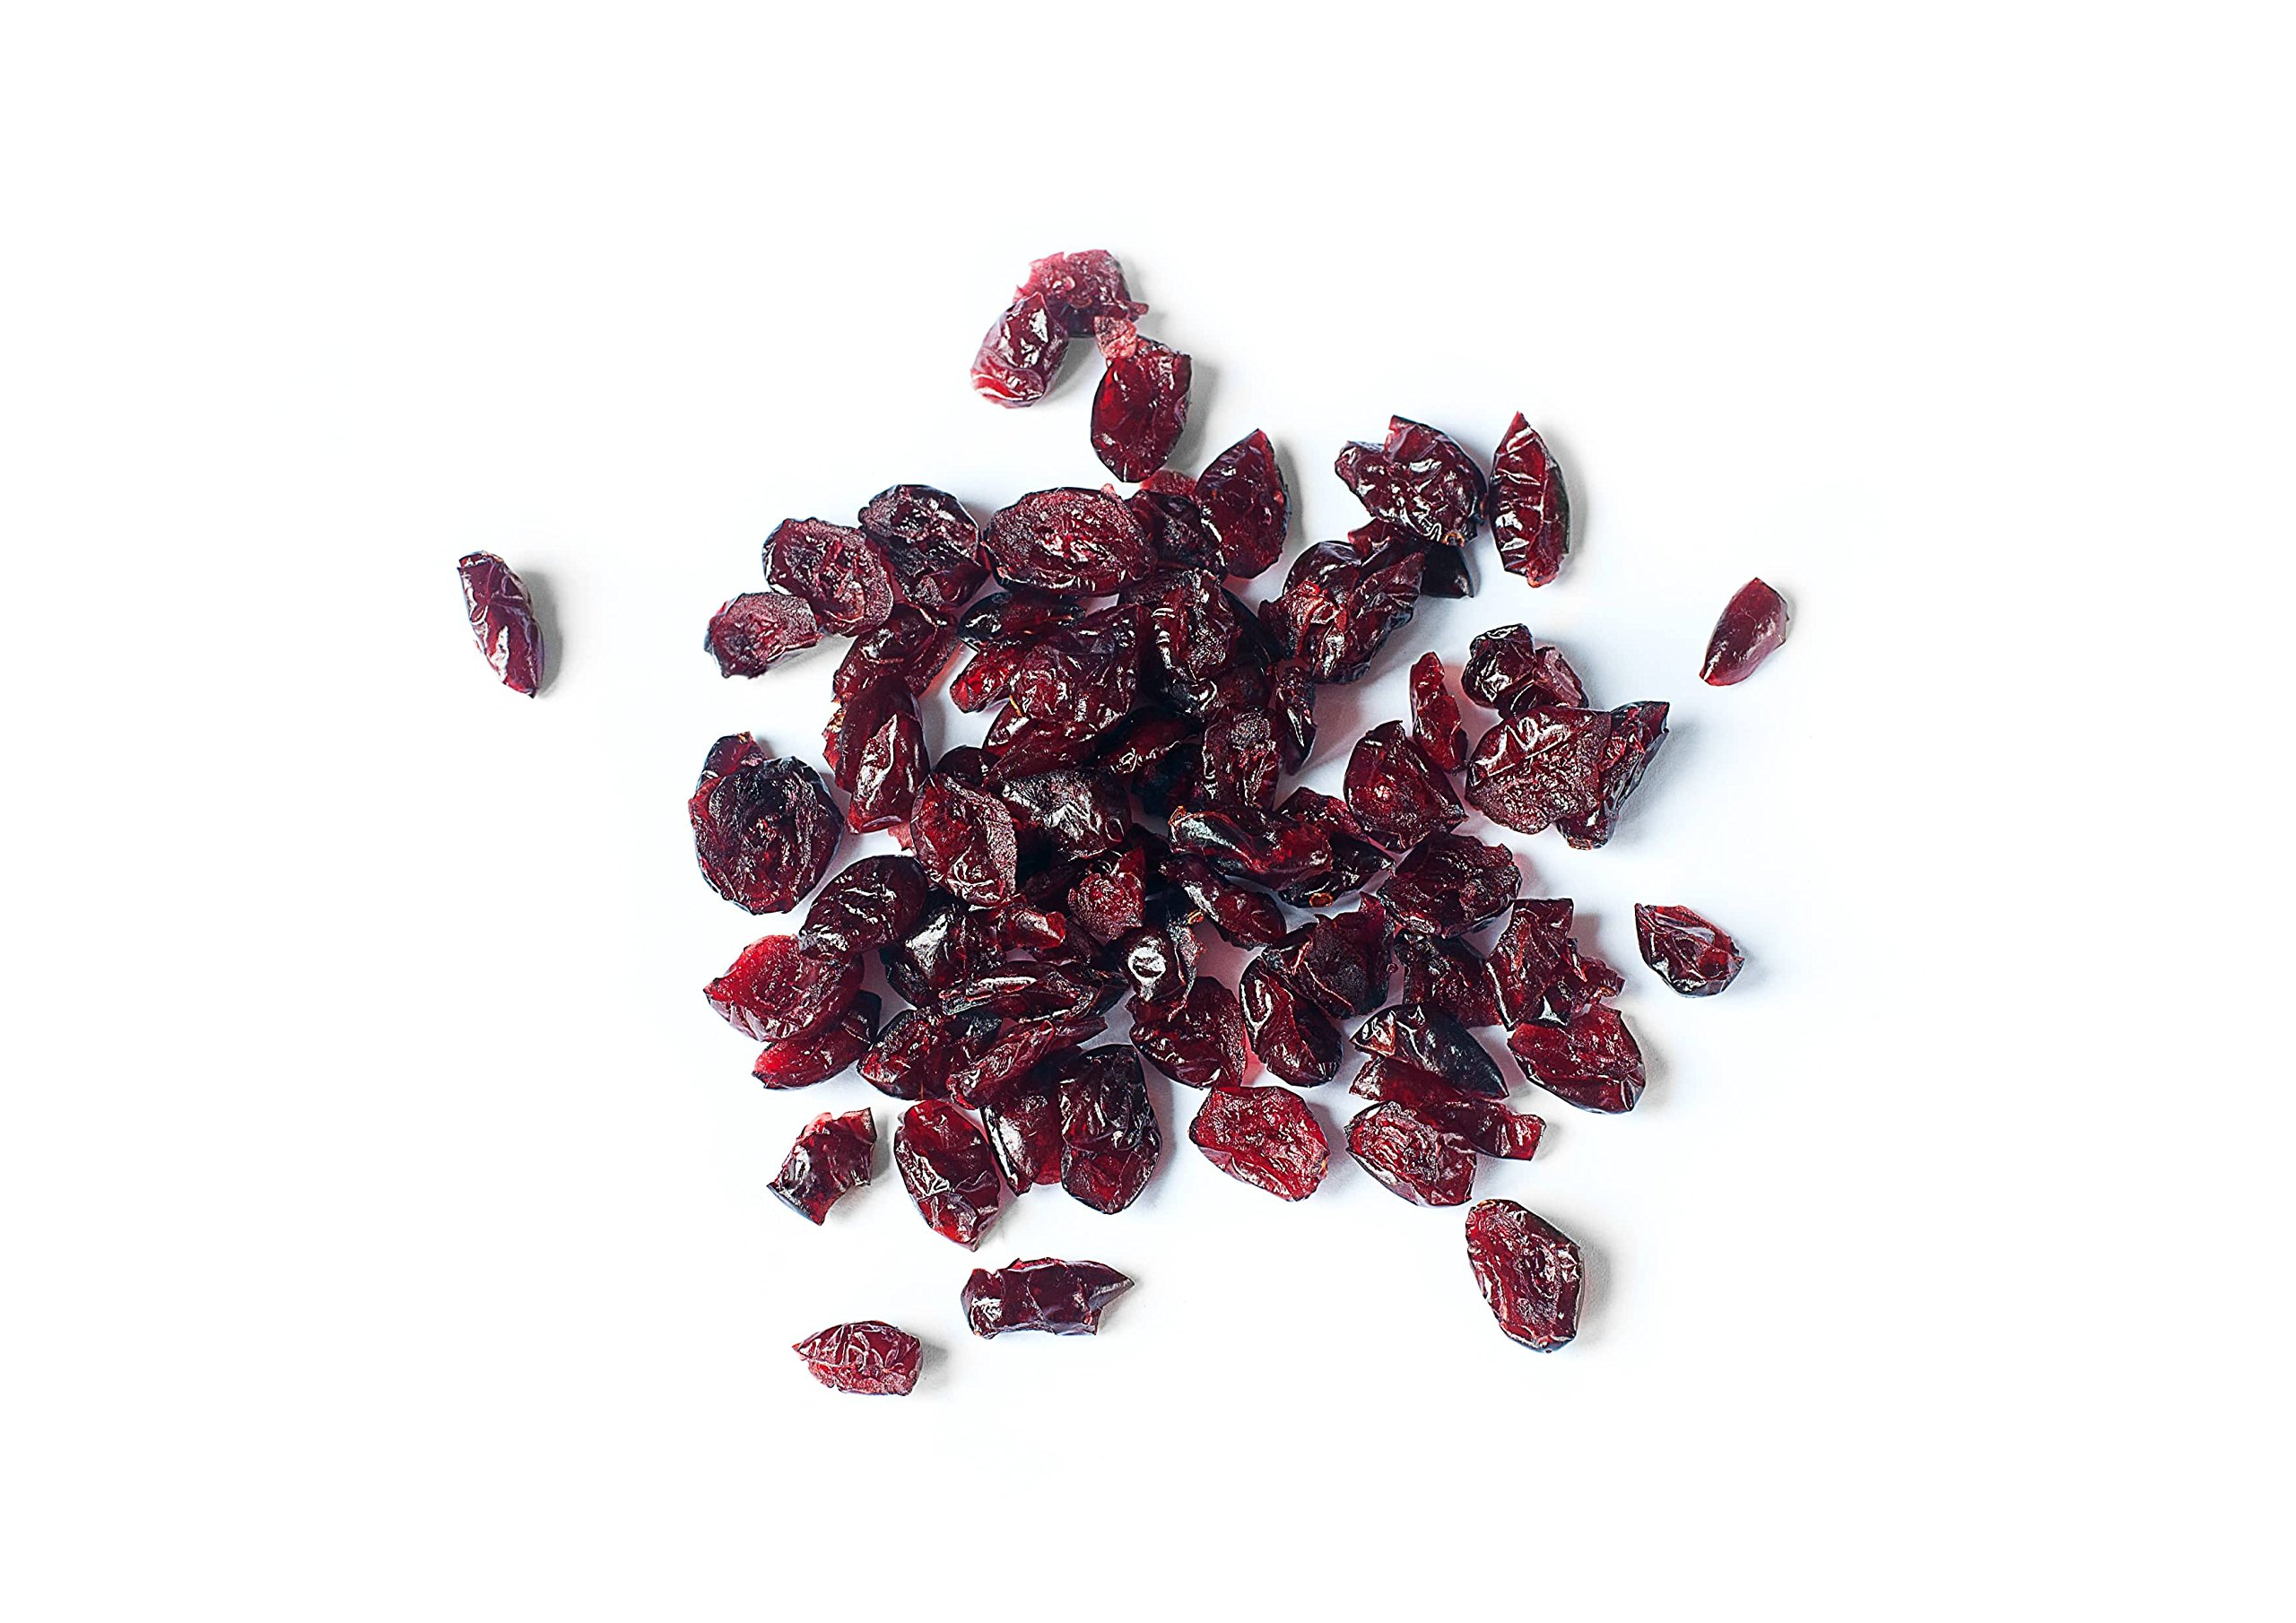 Organic Dried Cranberries, 8 Ounces — Non-GMO, Kosher, Unsulfured, Bulk by Food to Live (Image #5)